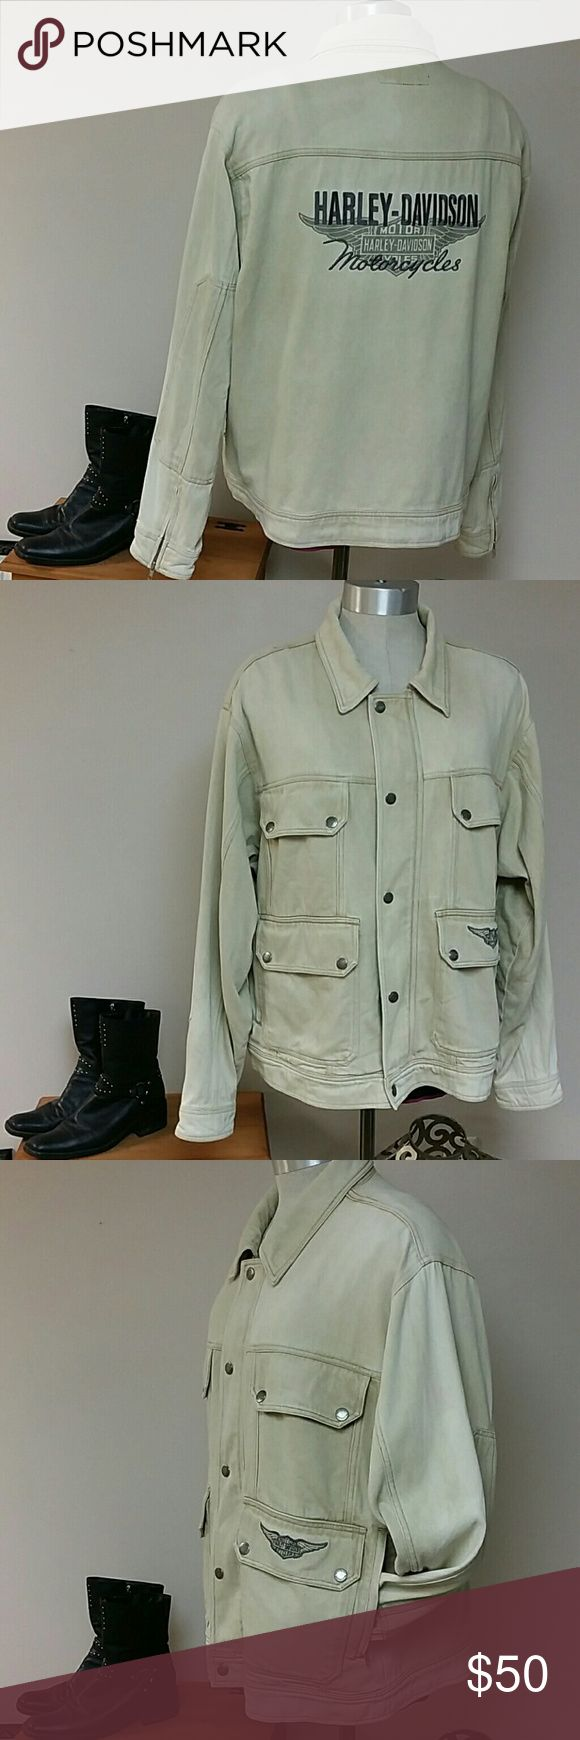 """PLUS mens XL Harley Jean Jacket UNISEX Tan denim jacket worn on a tall PLUS sized woman for real riding. Roomy enough to wear over a hoodie or fleece liner. Snap and zipper pockets. Excellent condition.   Men sized XL...check these measurements against your own jacket. Measured fully zipped closed.  Chest 25"""" across, hem falls below hip 25"""" across, sleeve length 23"""". Shoulder to hem 27"""".   Fits Men XL or Women 18/20 tall  Free shipping on this item, ask me how! Harley-Davidson Jackets…"""